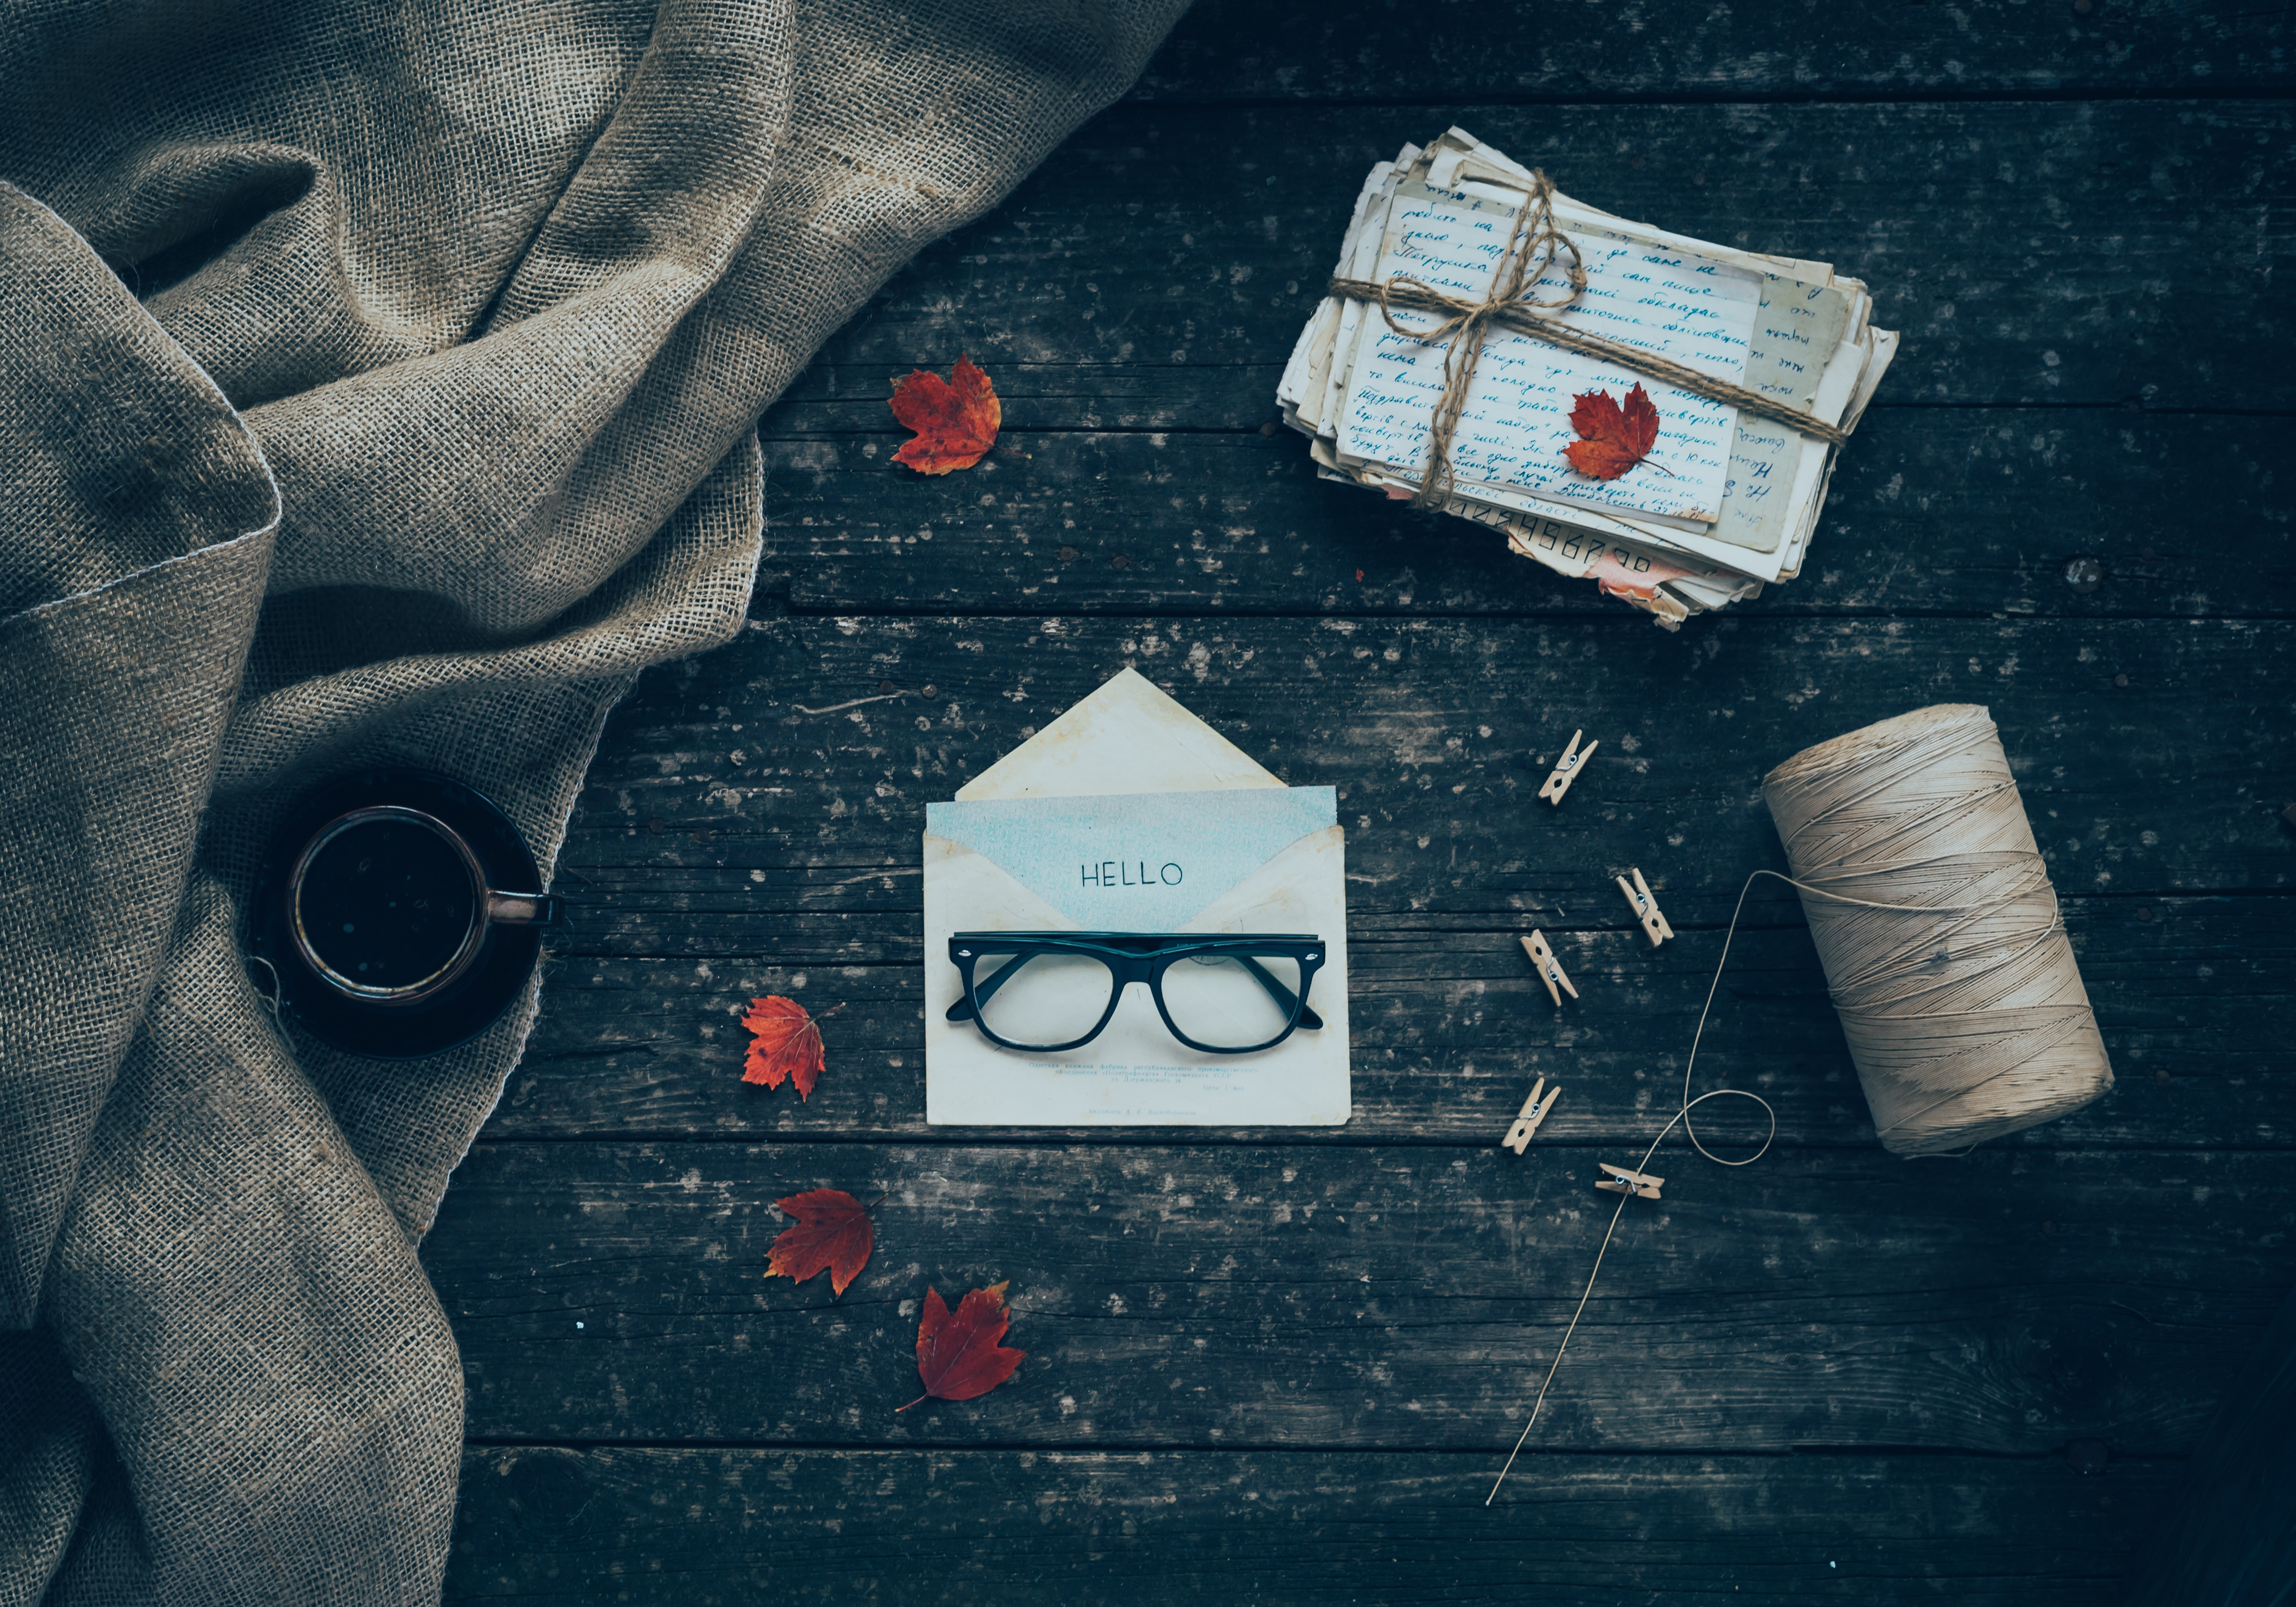 141017 download wallpaper Miscellanea, Miscellaneous, Envelope, Letters, Glasses, Spectacles screensavers and pictures for free